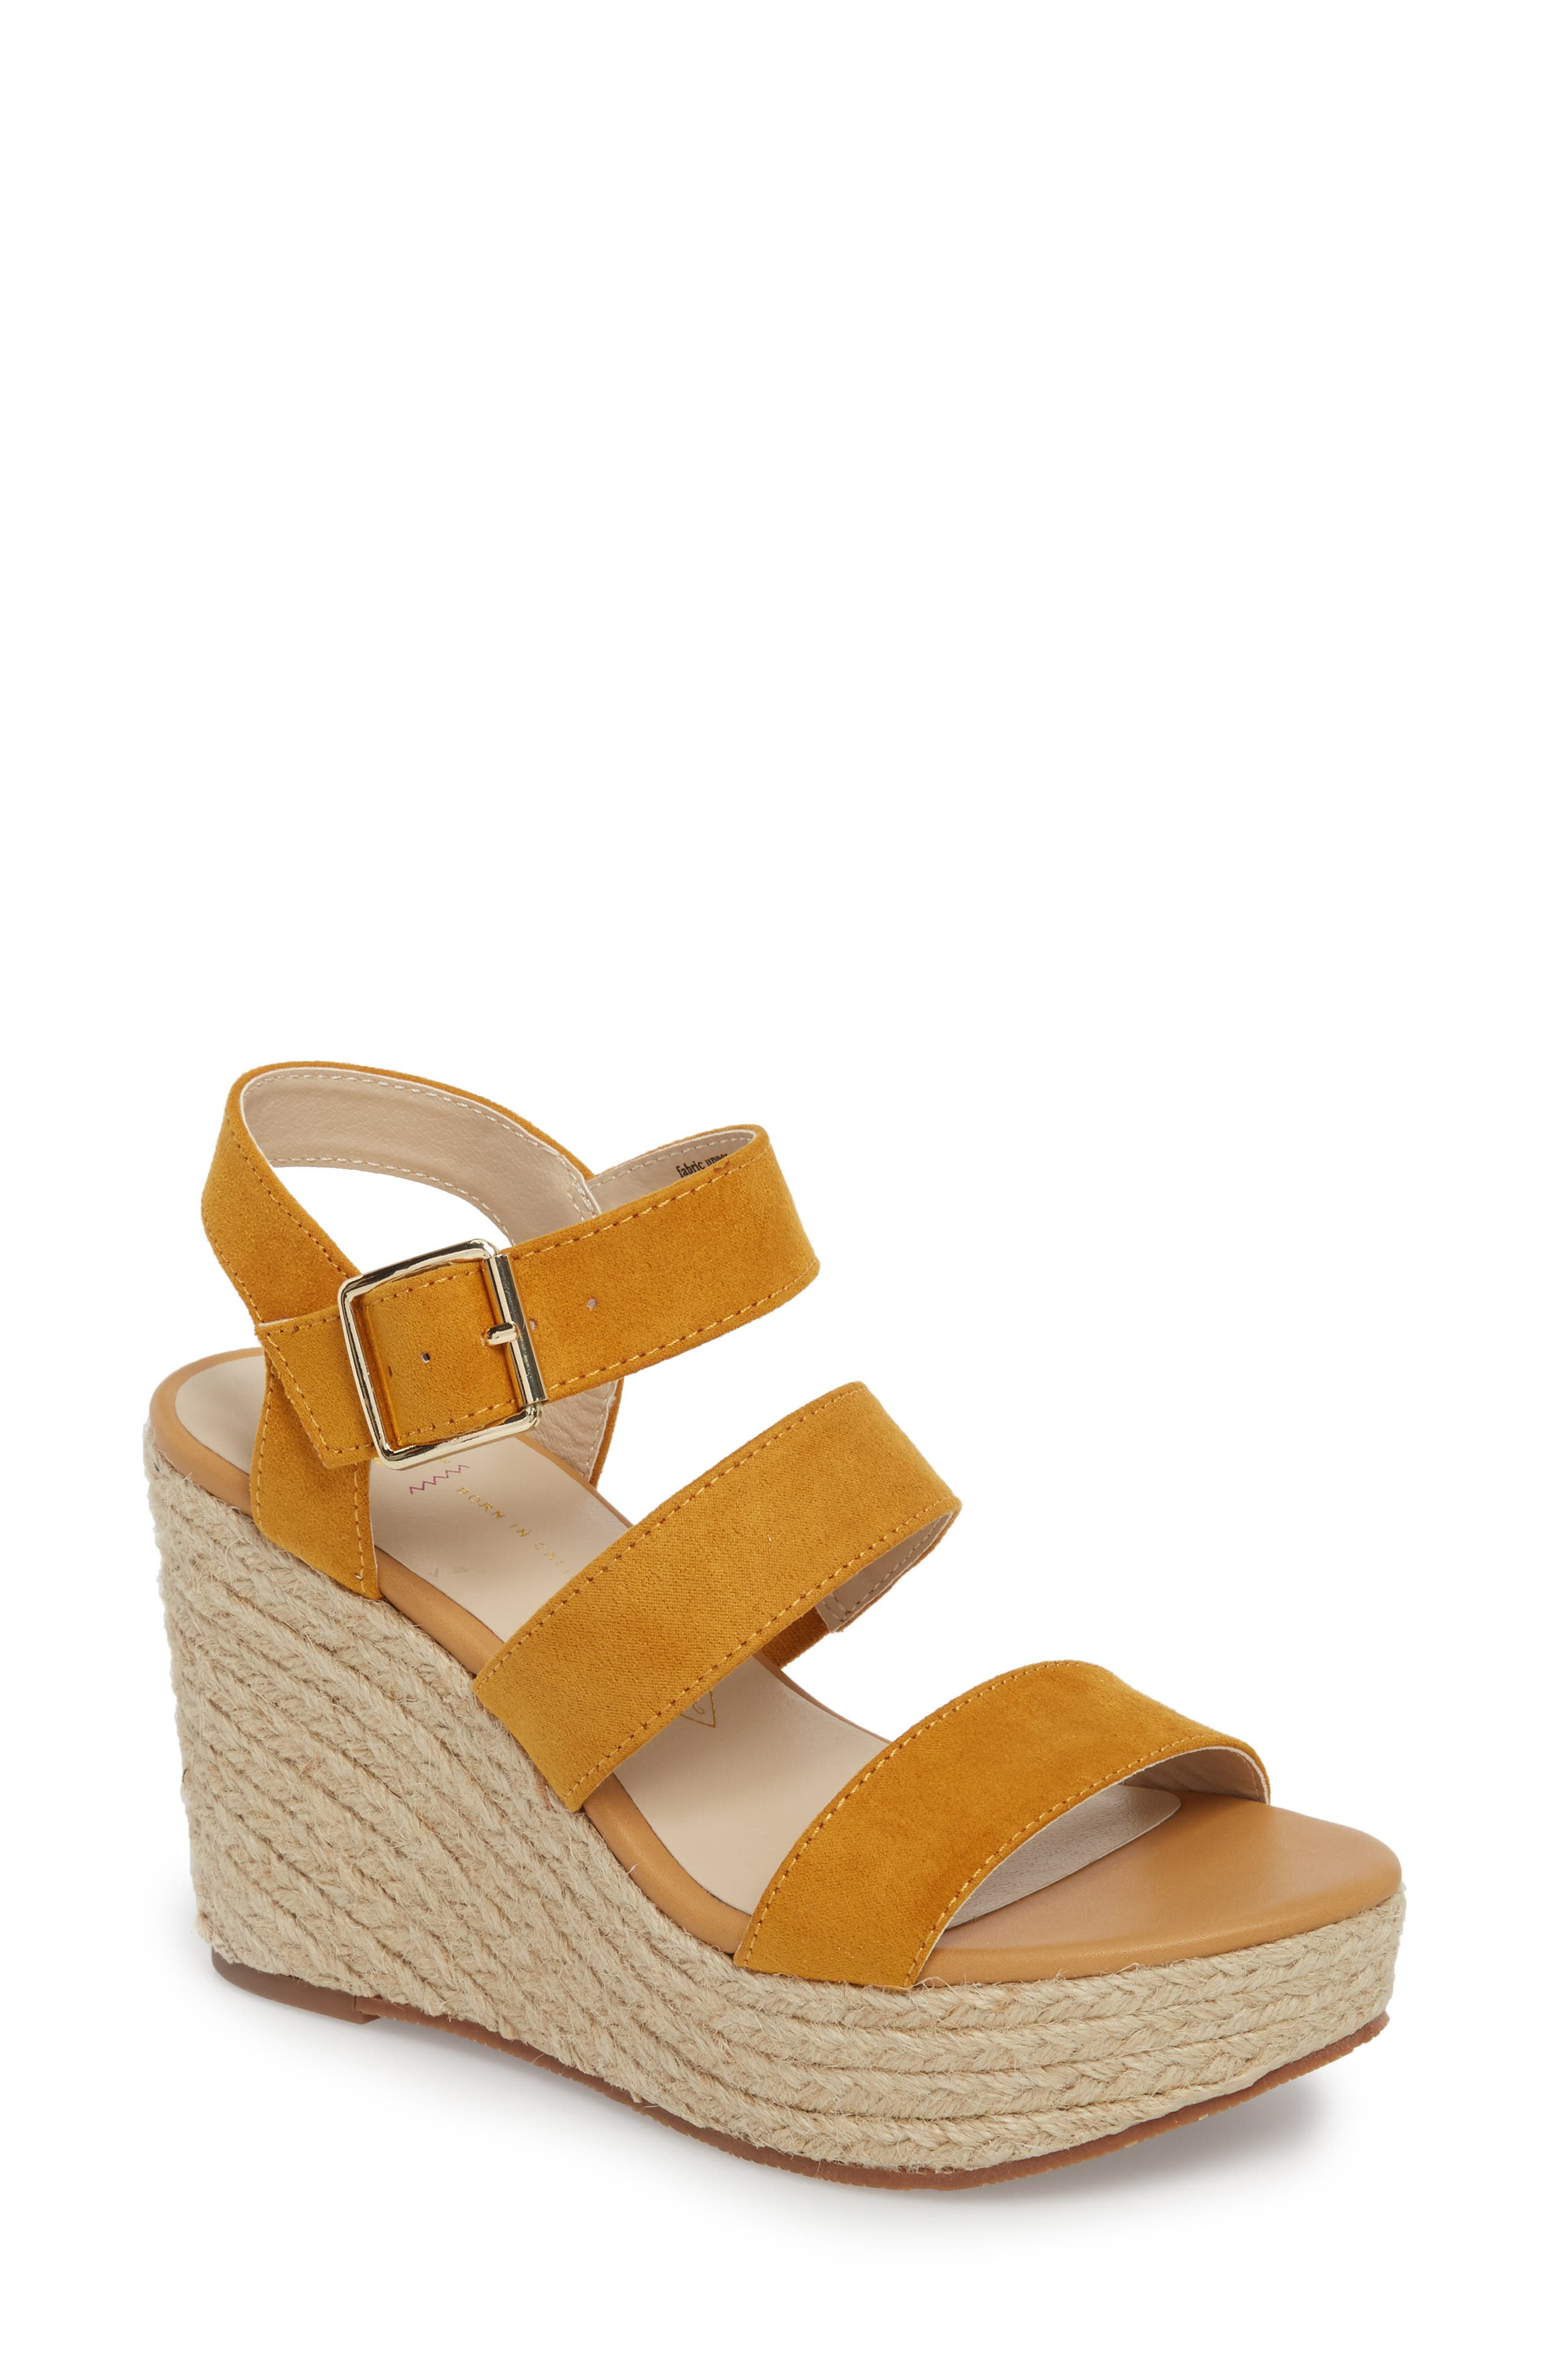 Snack Bar Espadrille Wedge Sandal,                             Main thumbnail 1, color,                             Taupe Suede